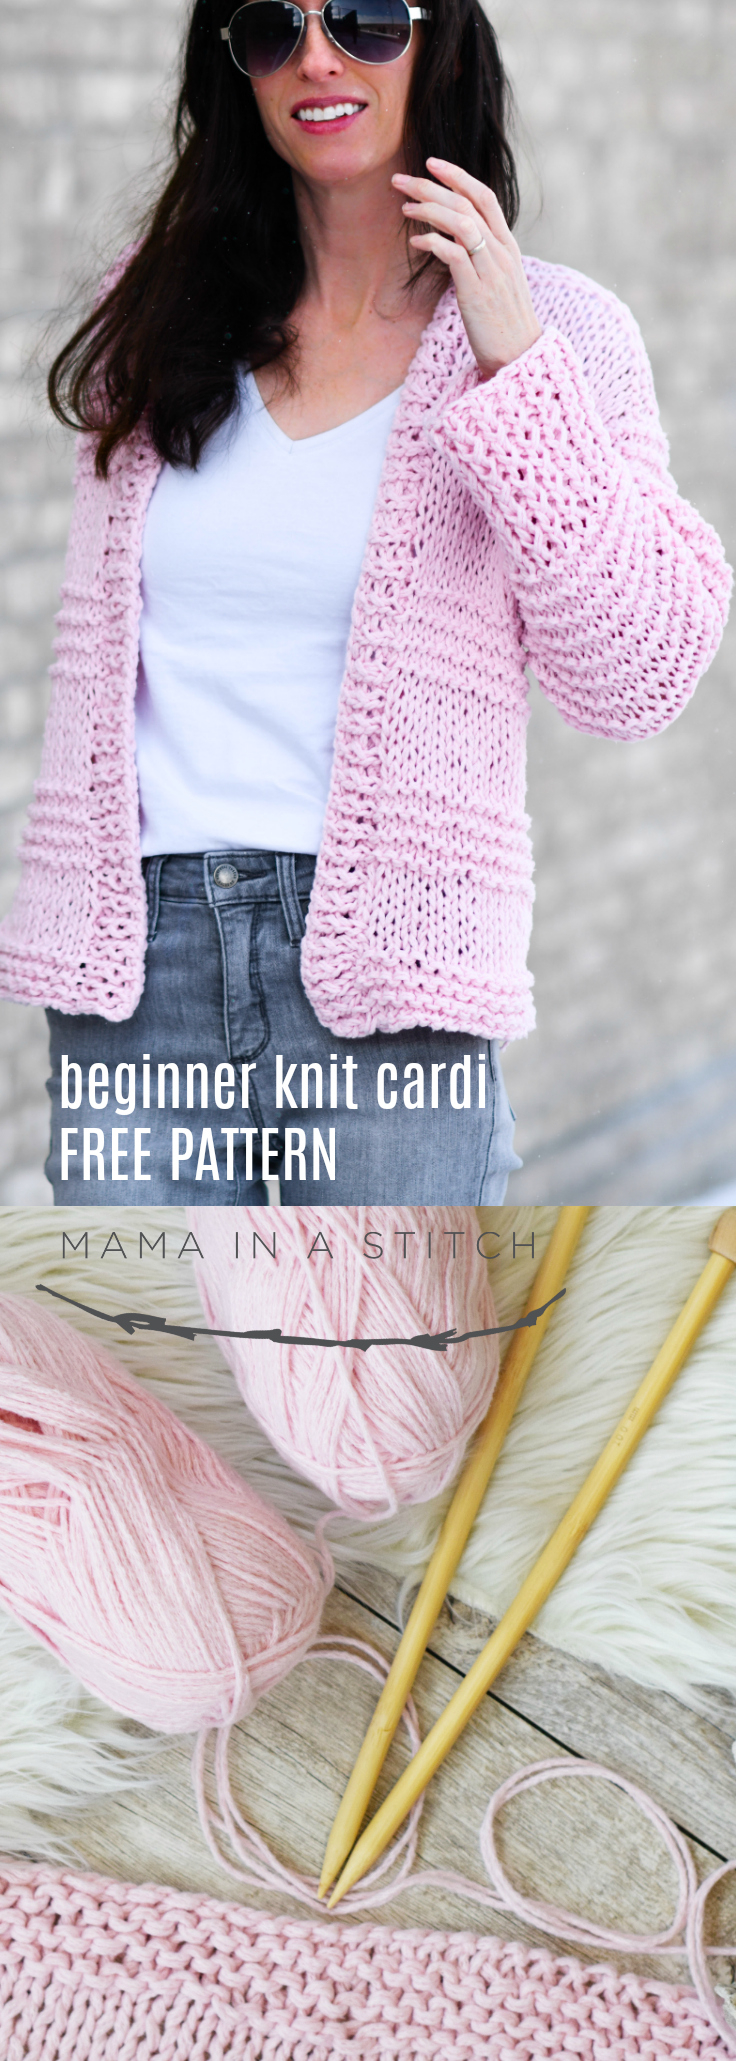 Free Cardigan Knitting Patterns For Beginners Cotton Candy Easy Knit Cardigan Pattern Mama In A Stitch